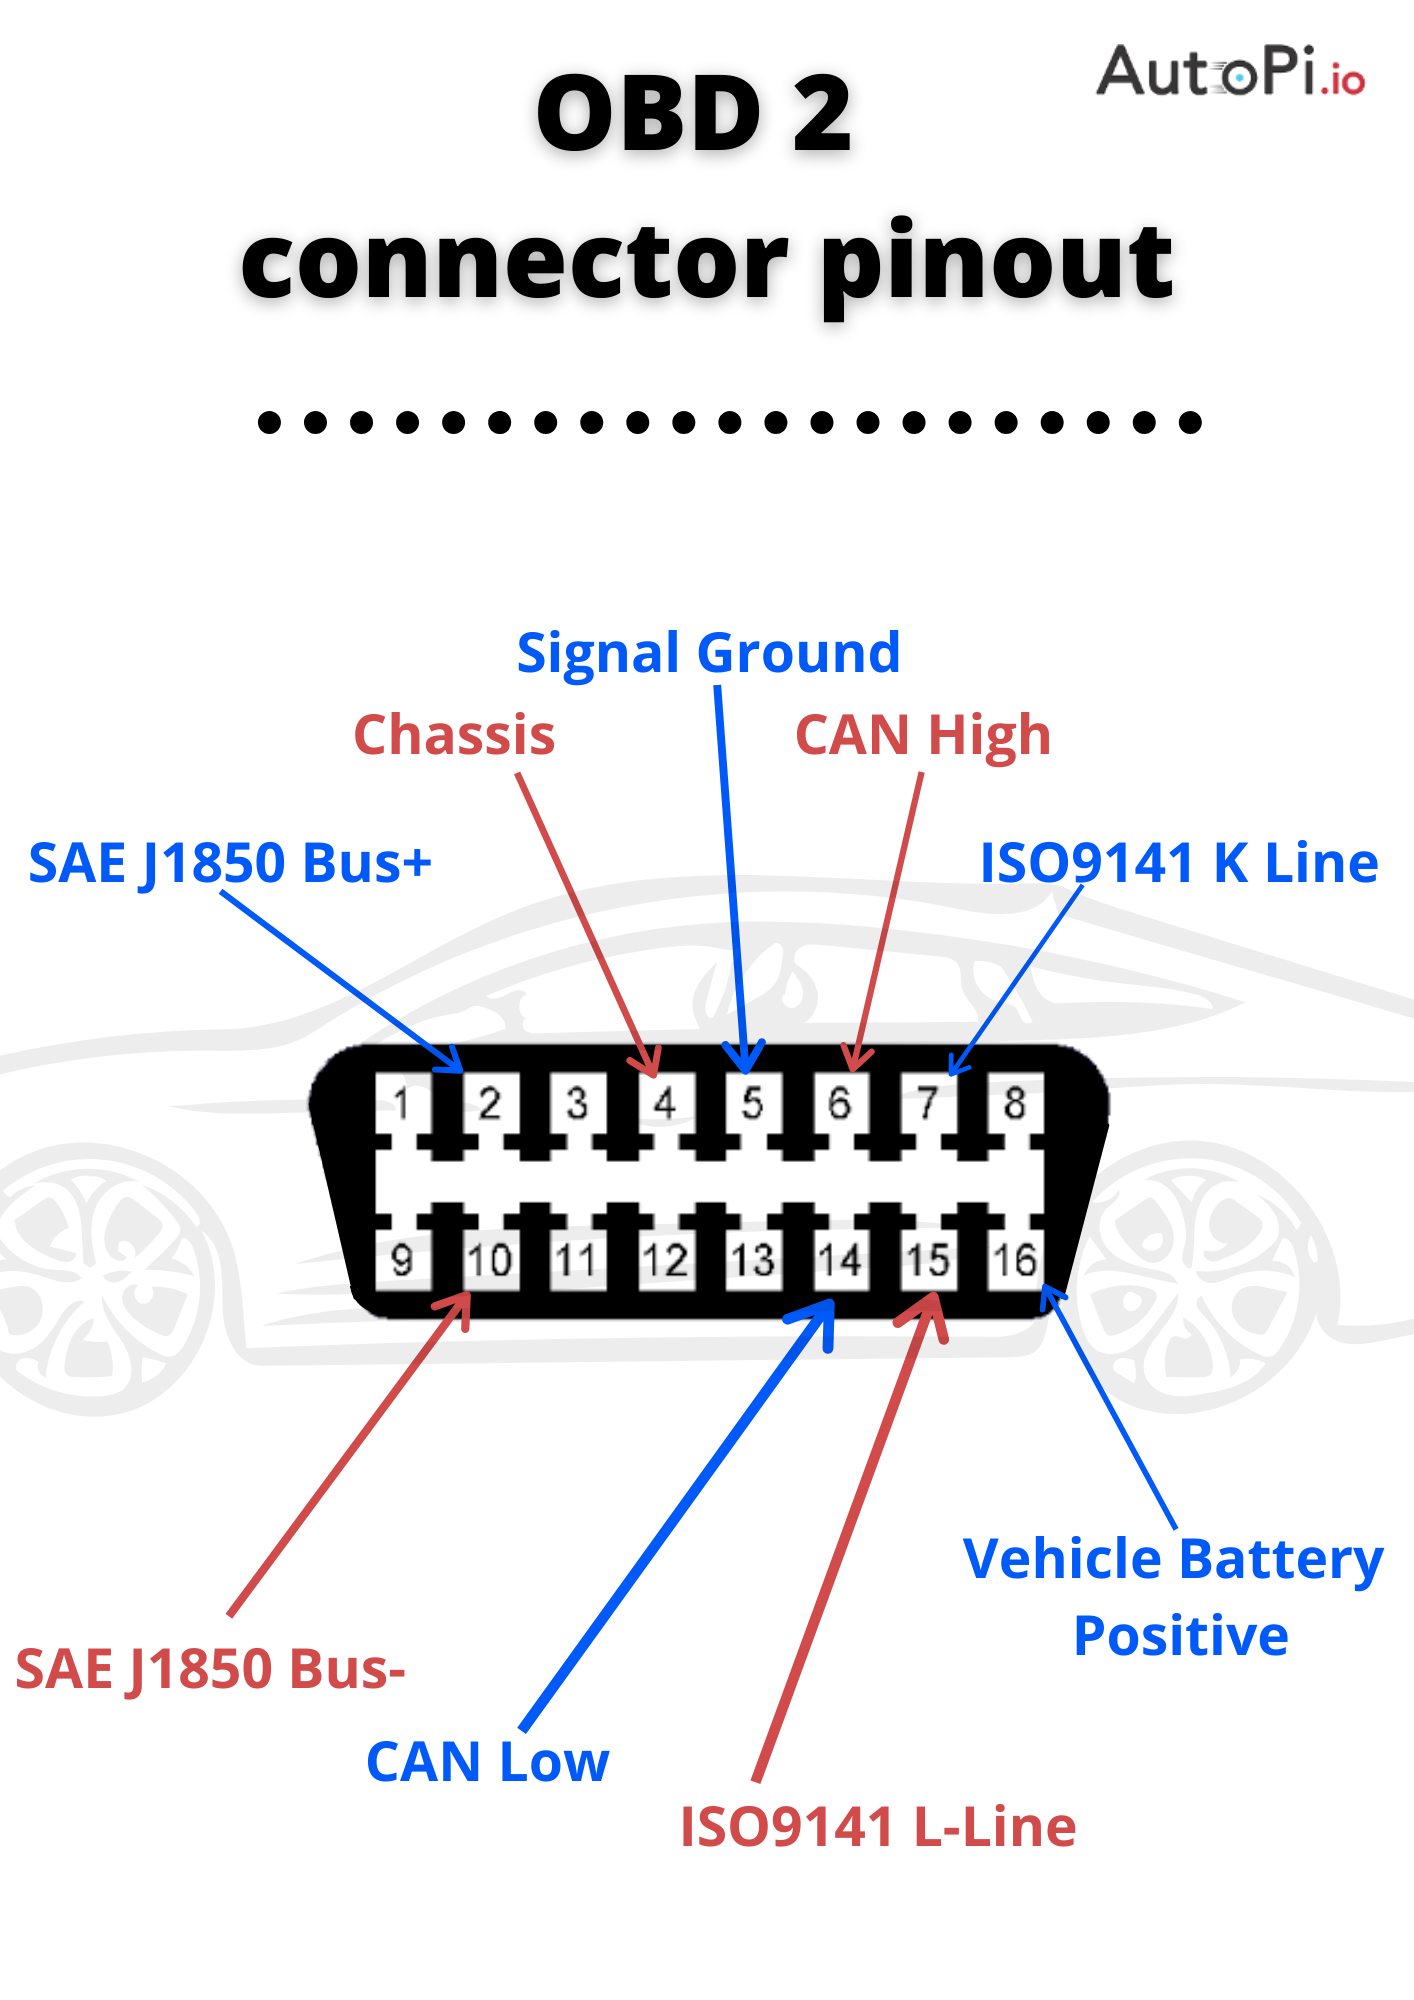 Illustration and meaning of different pinouts in on board diagnostics